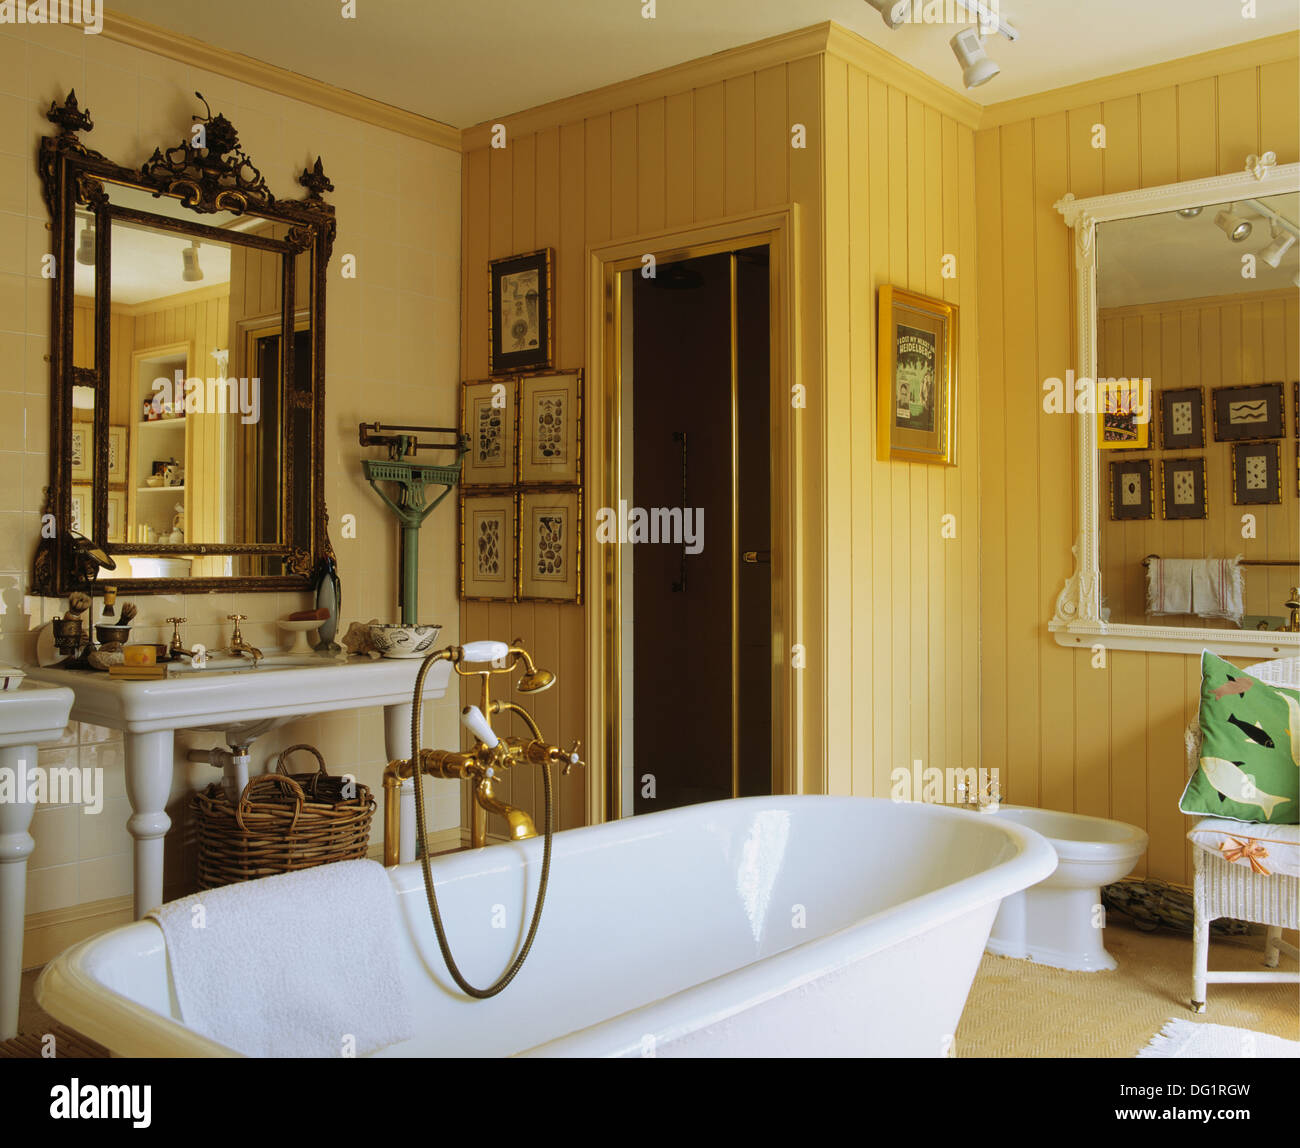 roll top bath and shower mobroi com antique mirror above basin in yellow bathroom with brass shower